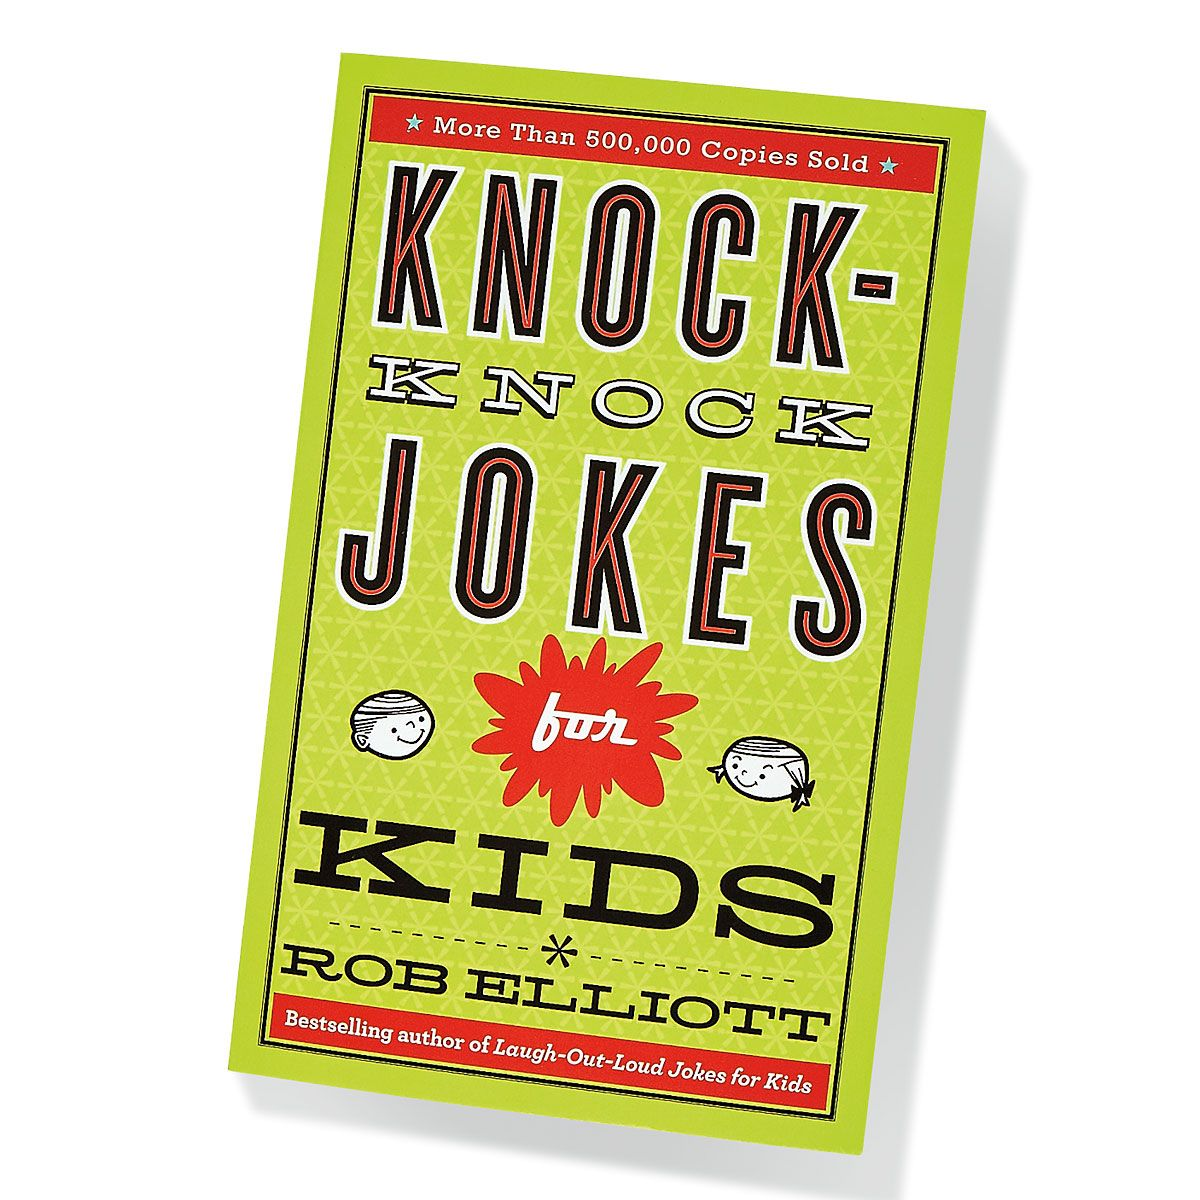 Knock-Knock Laugh Out Loud Kids' Jokes Book by Rob Elliott